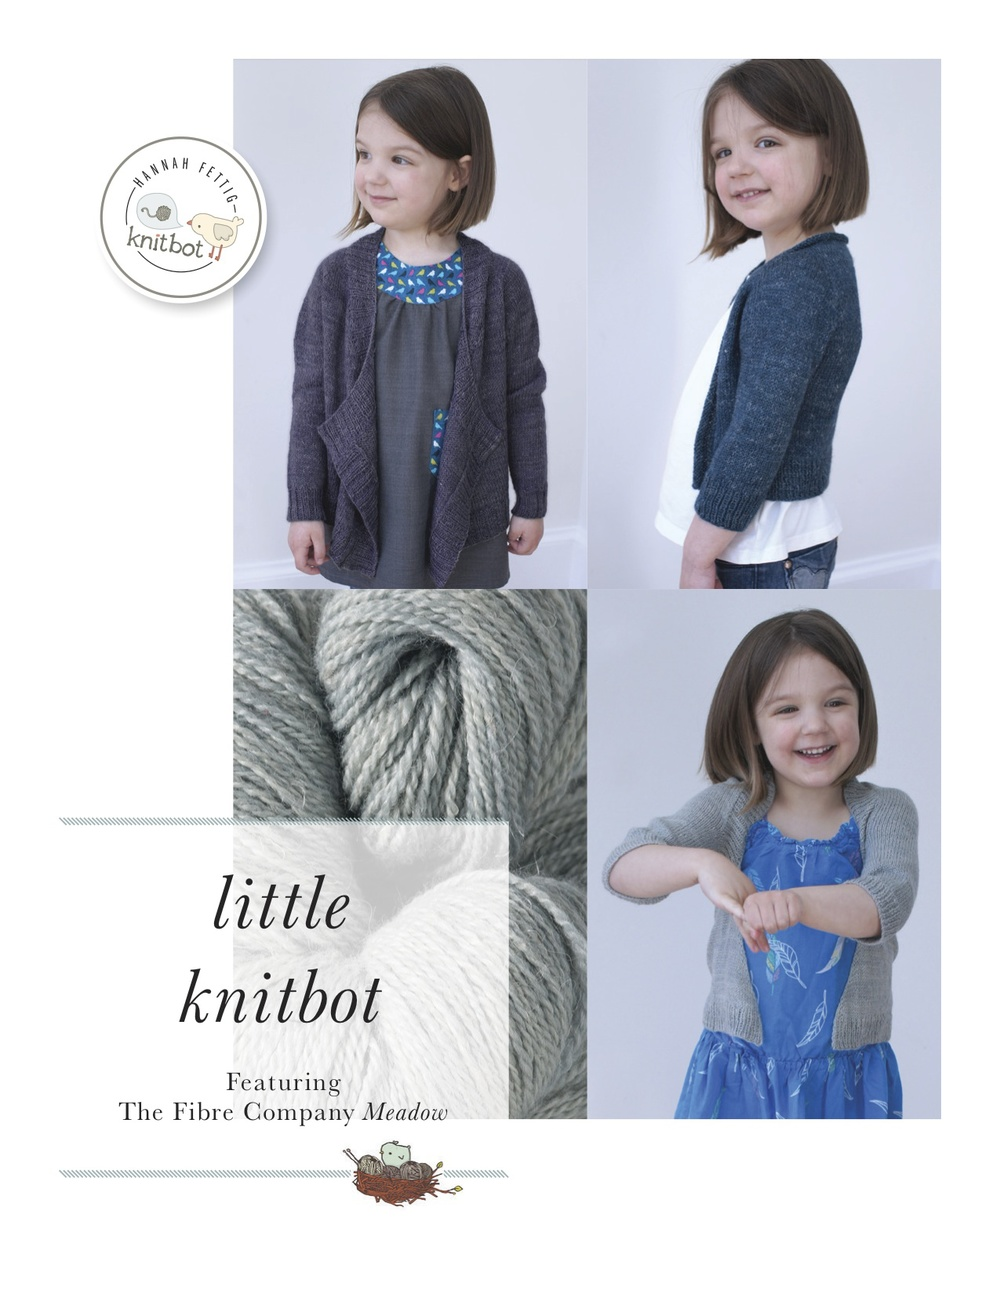 littleknitbot_cover.jpg